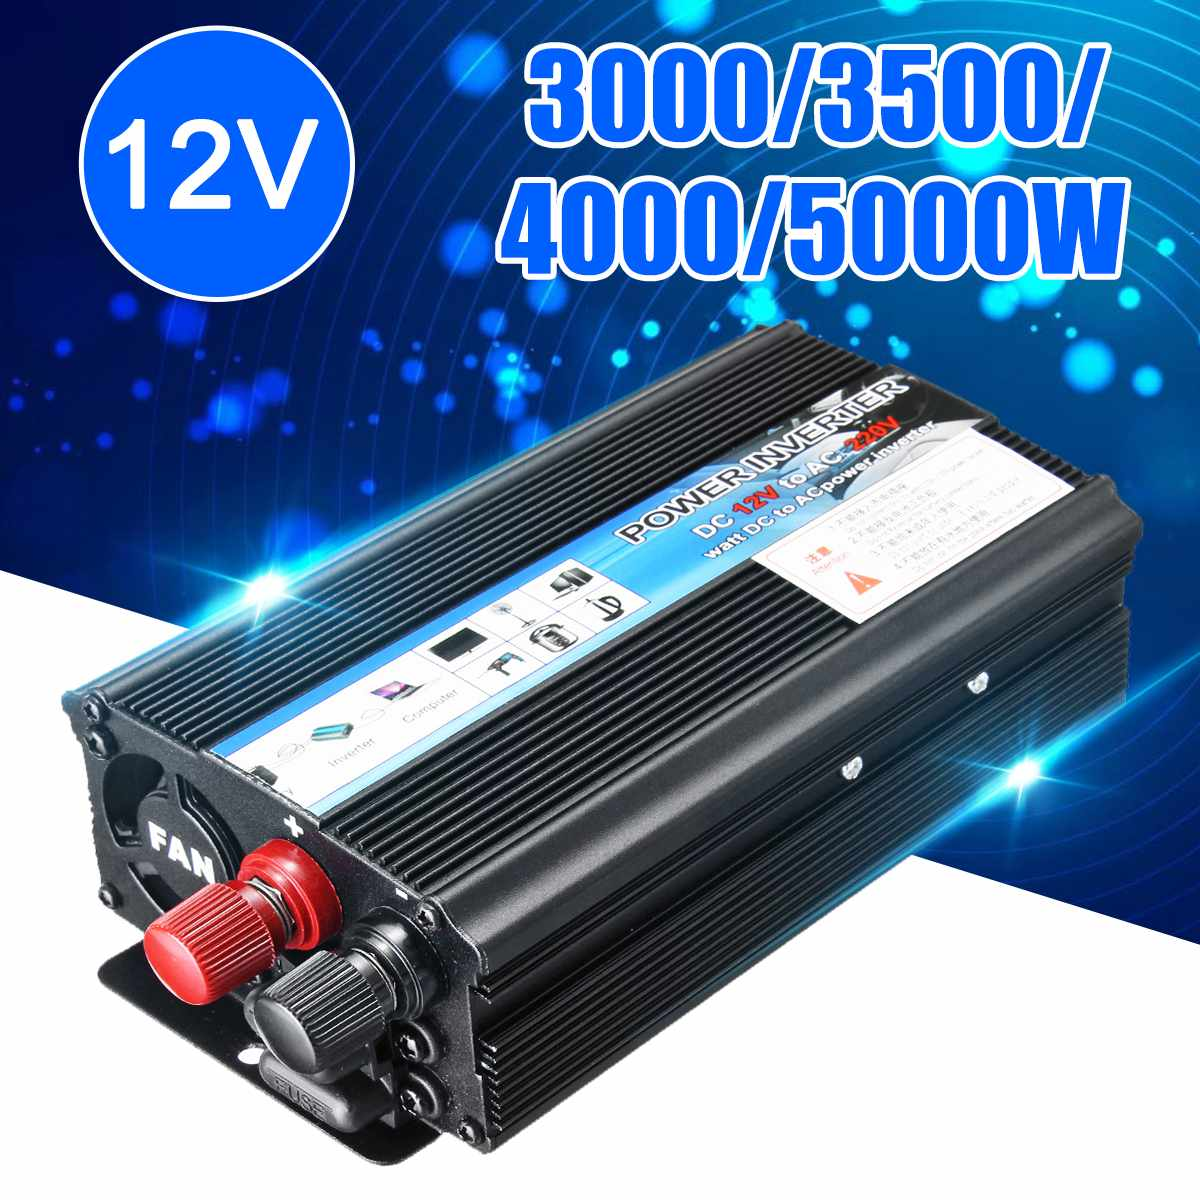 Inverter 5000W-3000 Watt Sine Wave Power Inverter DC 12V To AC 220V Portable Car Power USB Inverter Converter инвертор 12 в 220